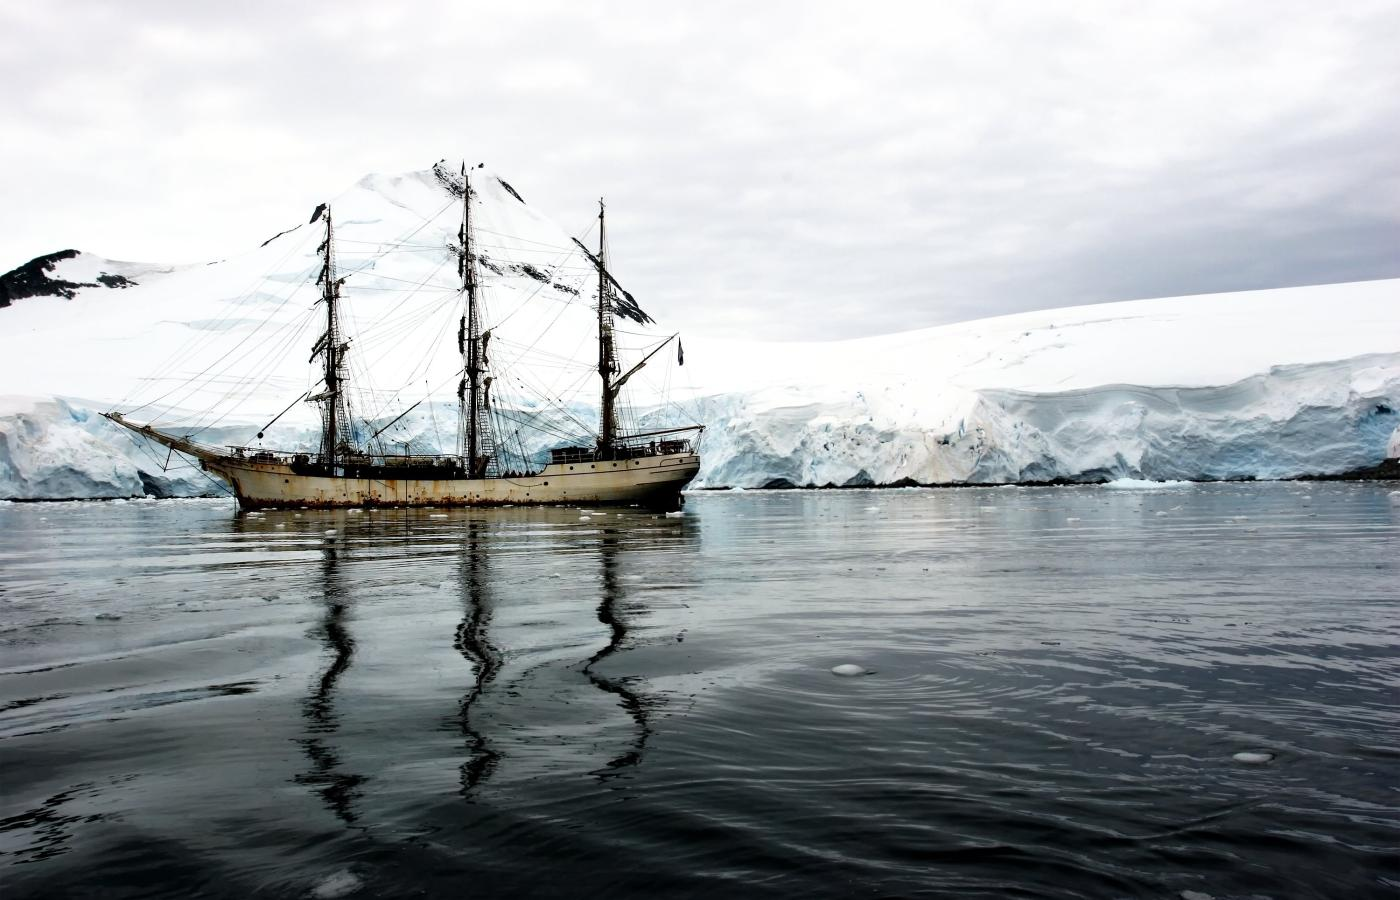 Historic photo of a sailing ship in Arctic waters